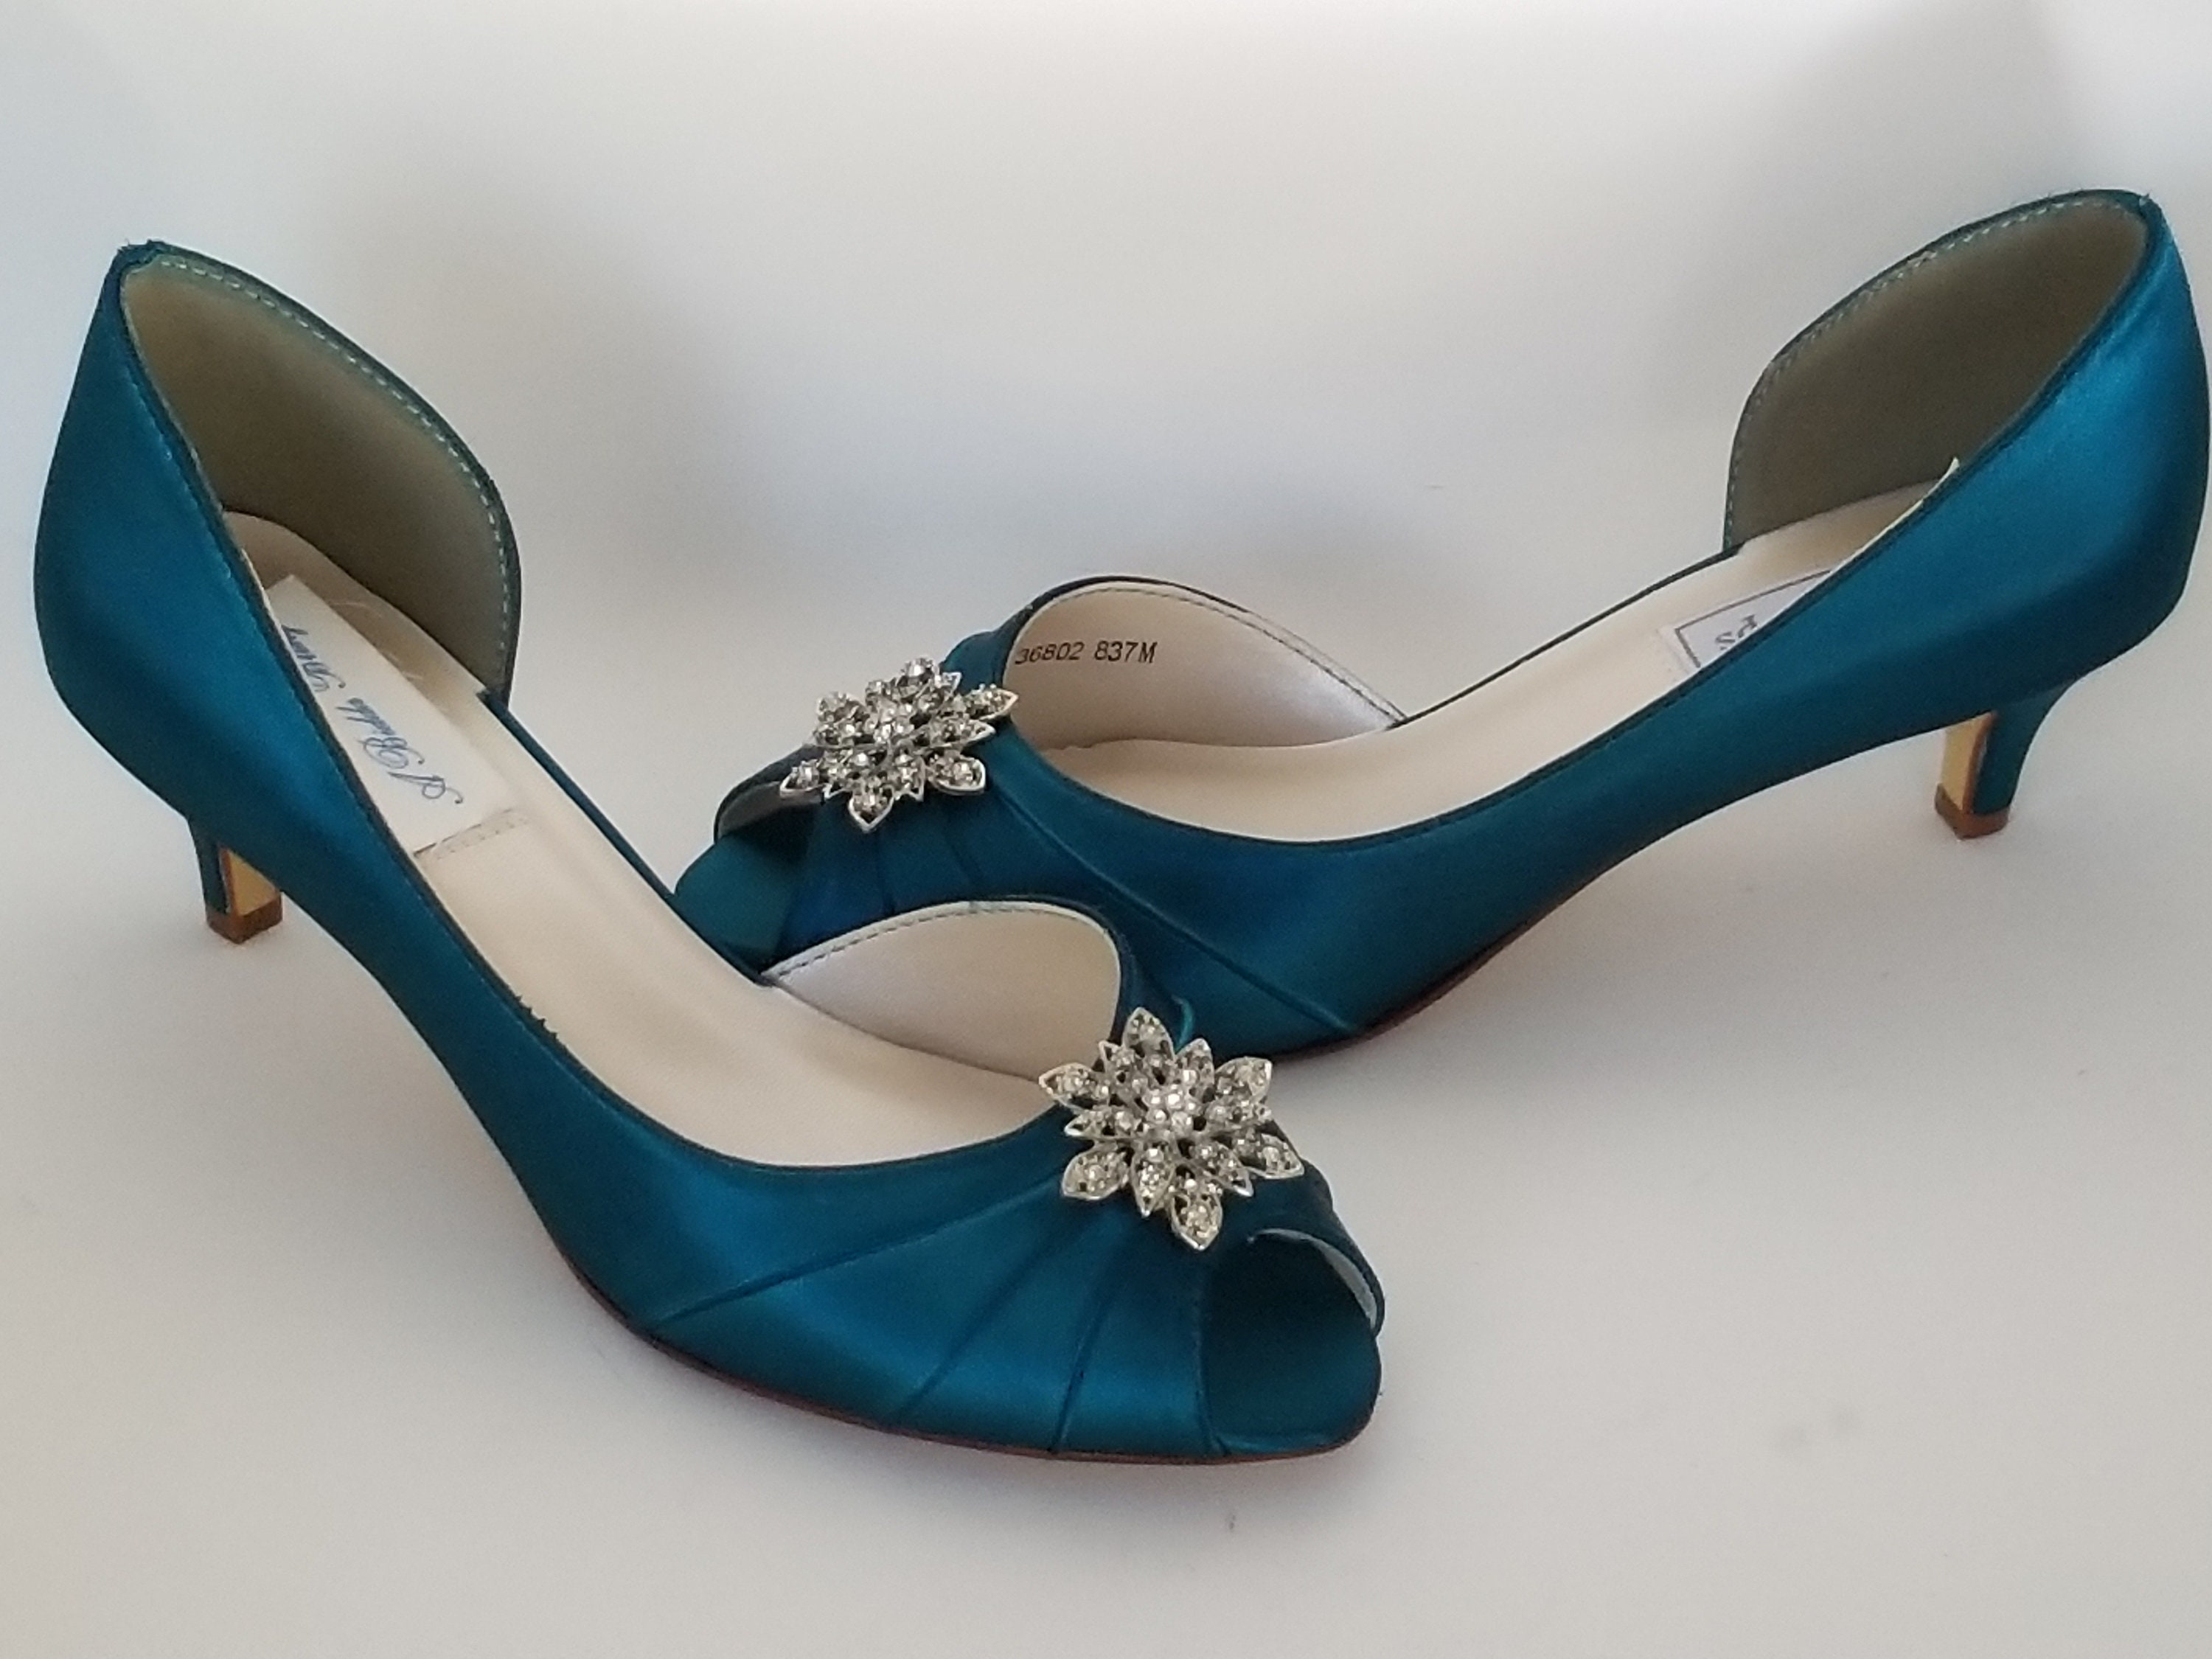 46c9a8a0e7936 Teal Wedding Shoes with Vintage Style Flower Teal Bridal Shoes Teal  Bridesmaid Shoes PICK FROM 100 COLORS Different Heel Heights